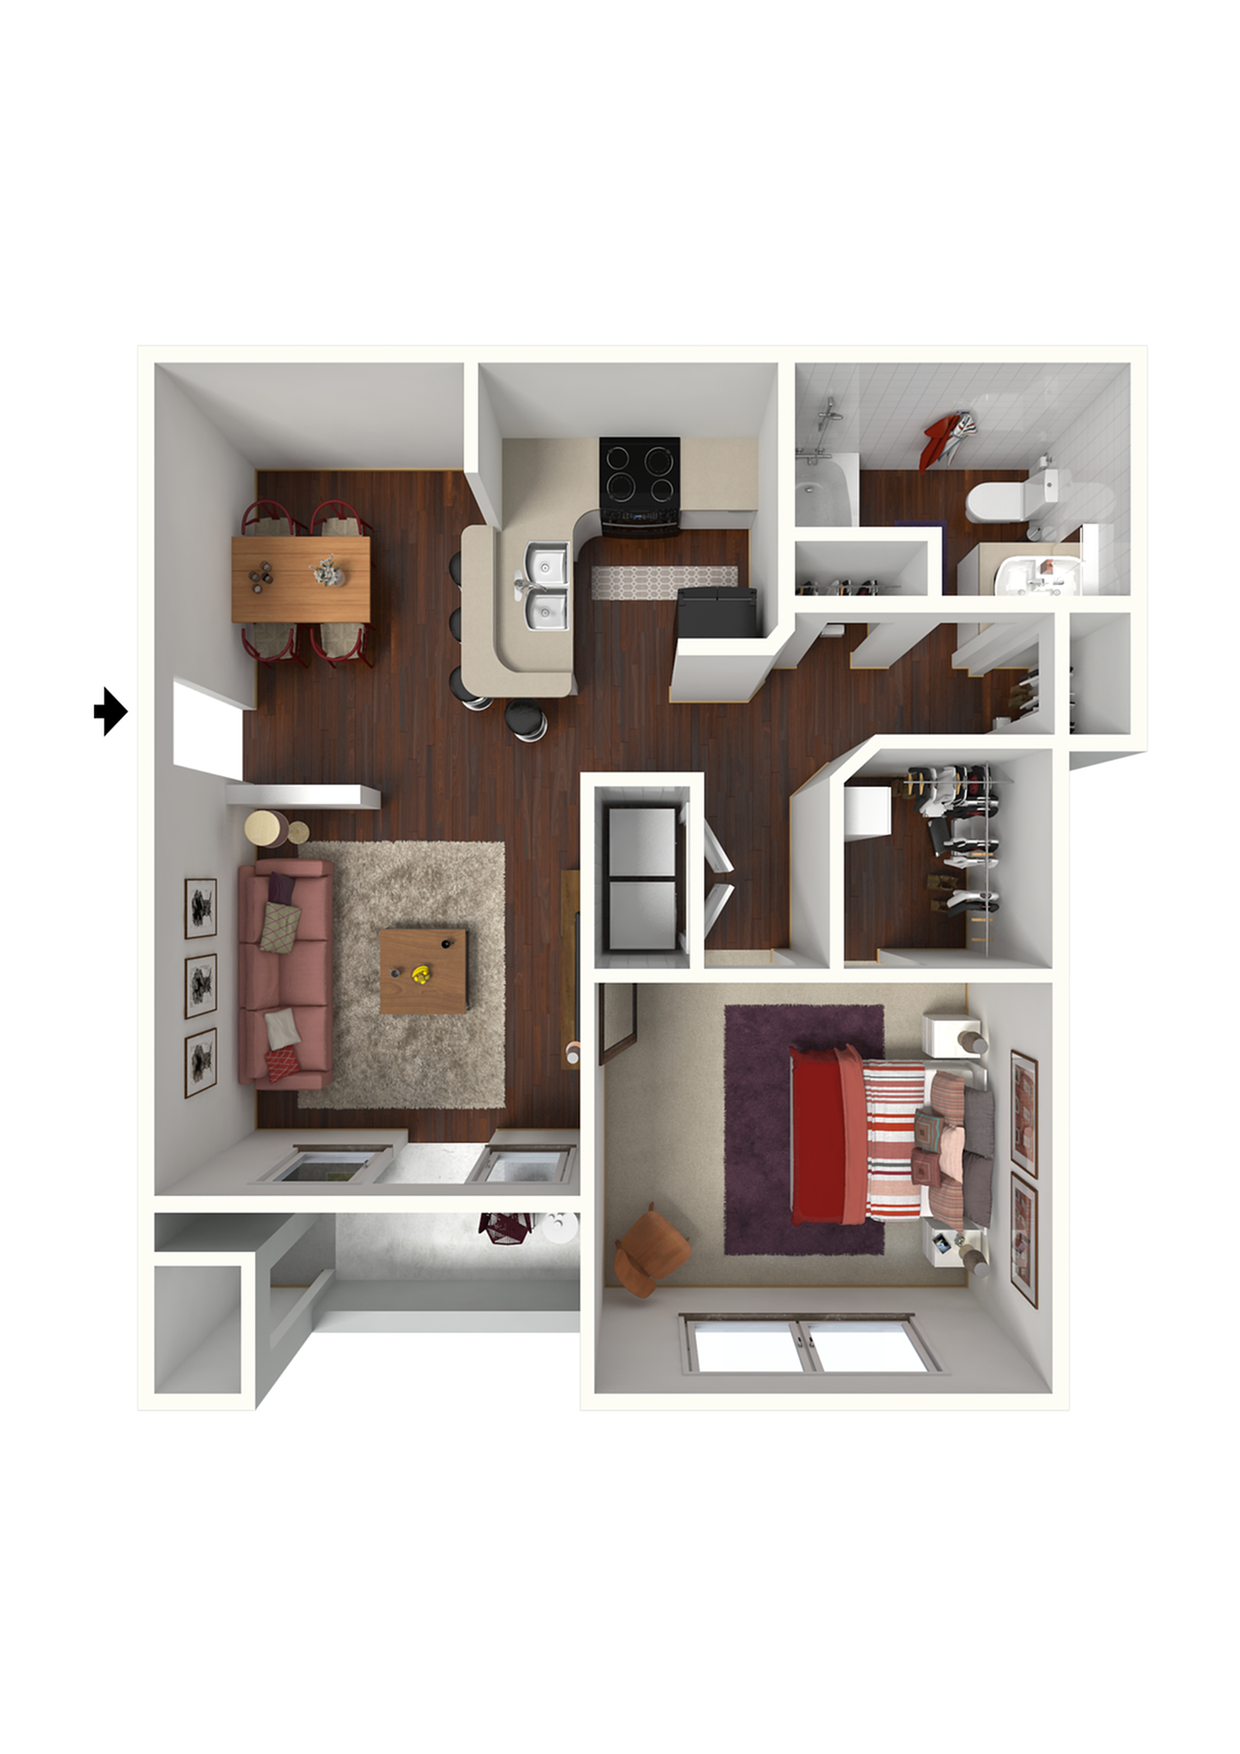 1 Bdrm Floor Plan | 3 Bedroom Apartments Near Atlanta Ga | Lake St. James